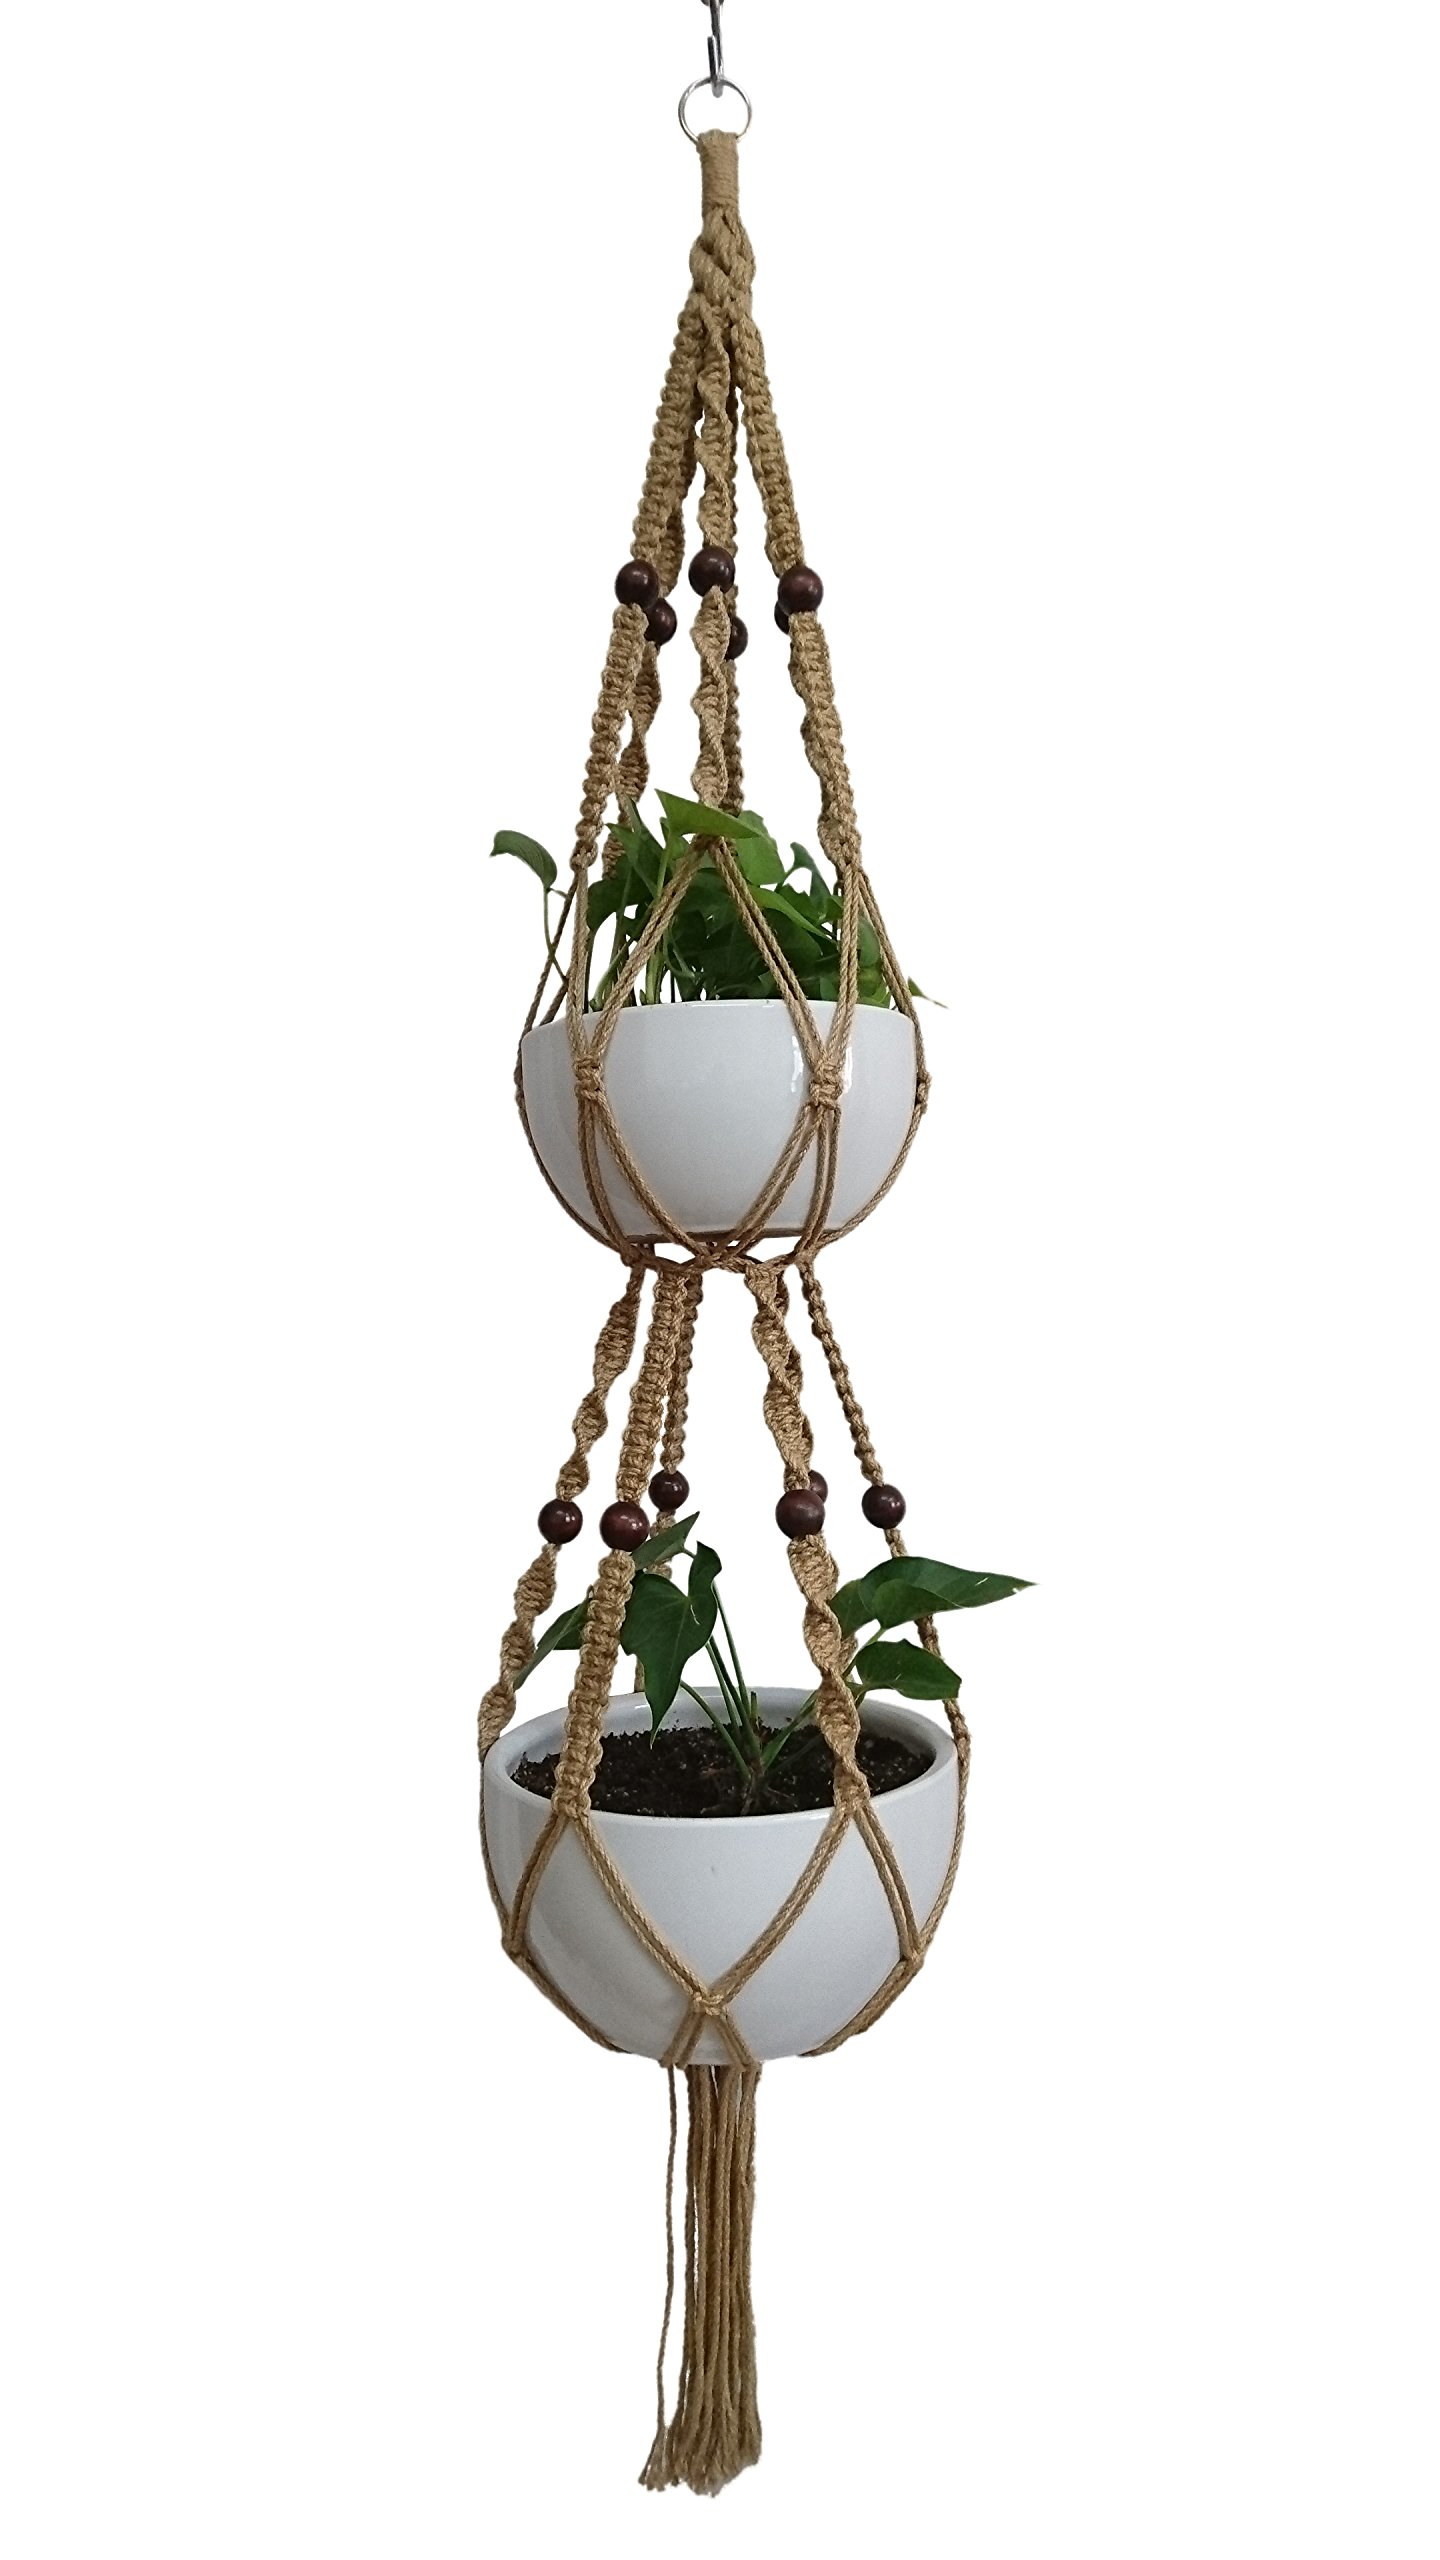 6 Legs Macrame Plant Hanger Jute Double Tiers Plant Hanger & Plant Holder with 6 pcs Round Brown Wood Bead, Hanging Planter 65-inches for 8 inch and 10 Inch Plant Pot (Without the white pot and plant)